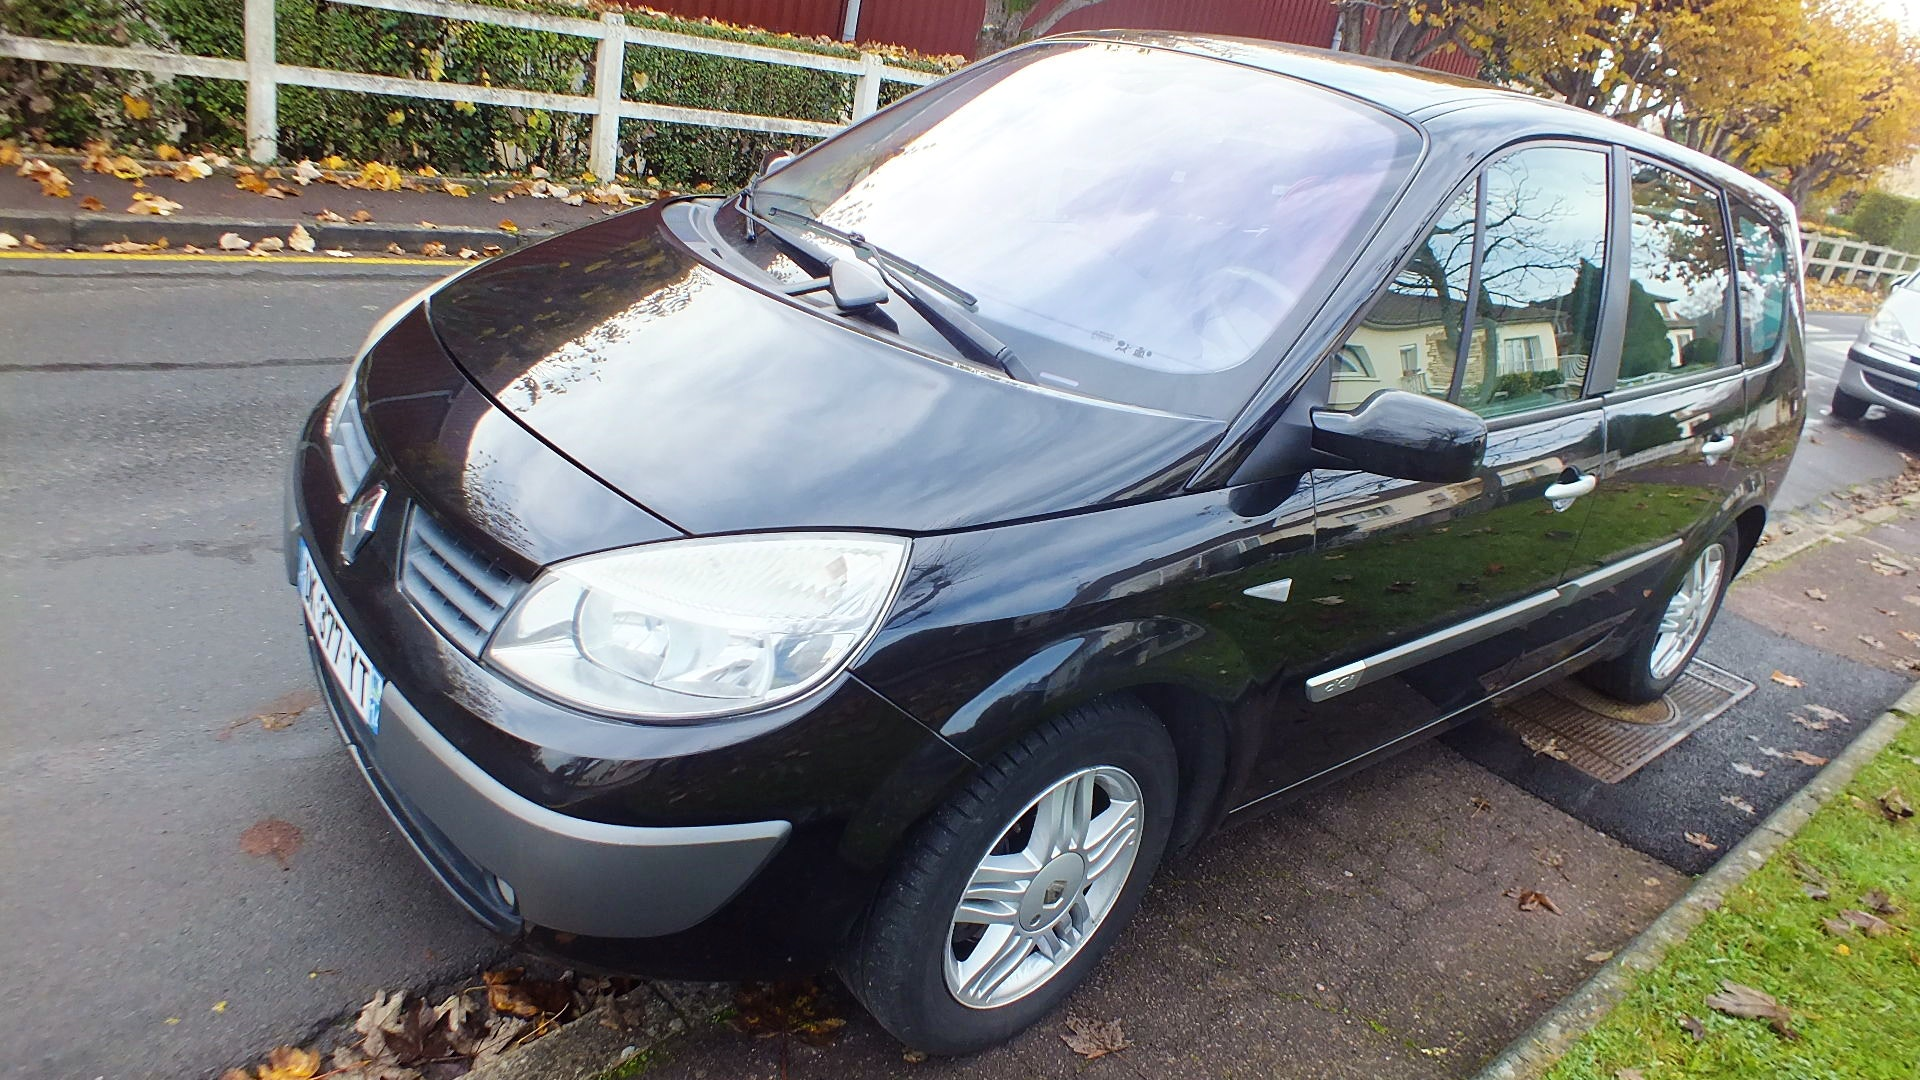 Renault Scenic 1.5 dci 100 Luxe Privilège - 7pl , 2004, Diesel, 7 places